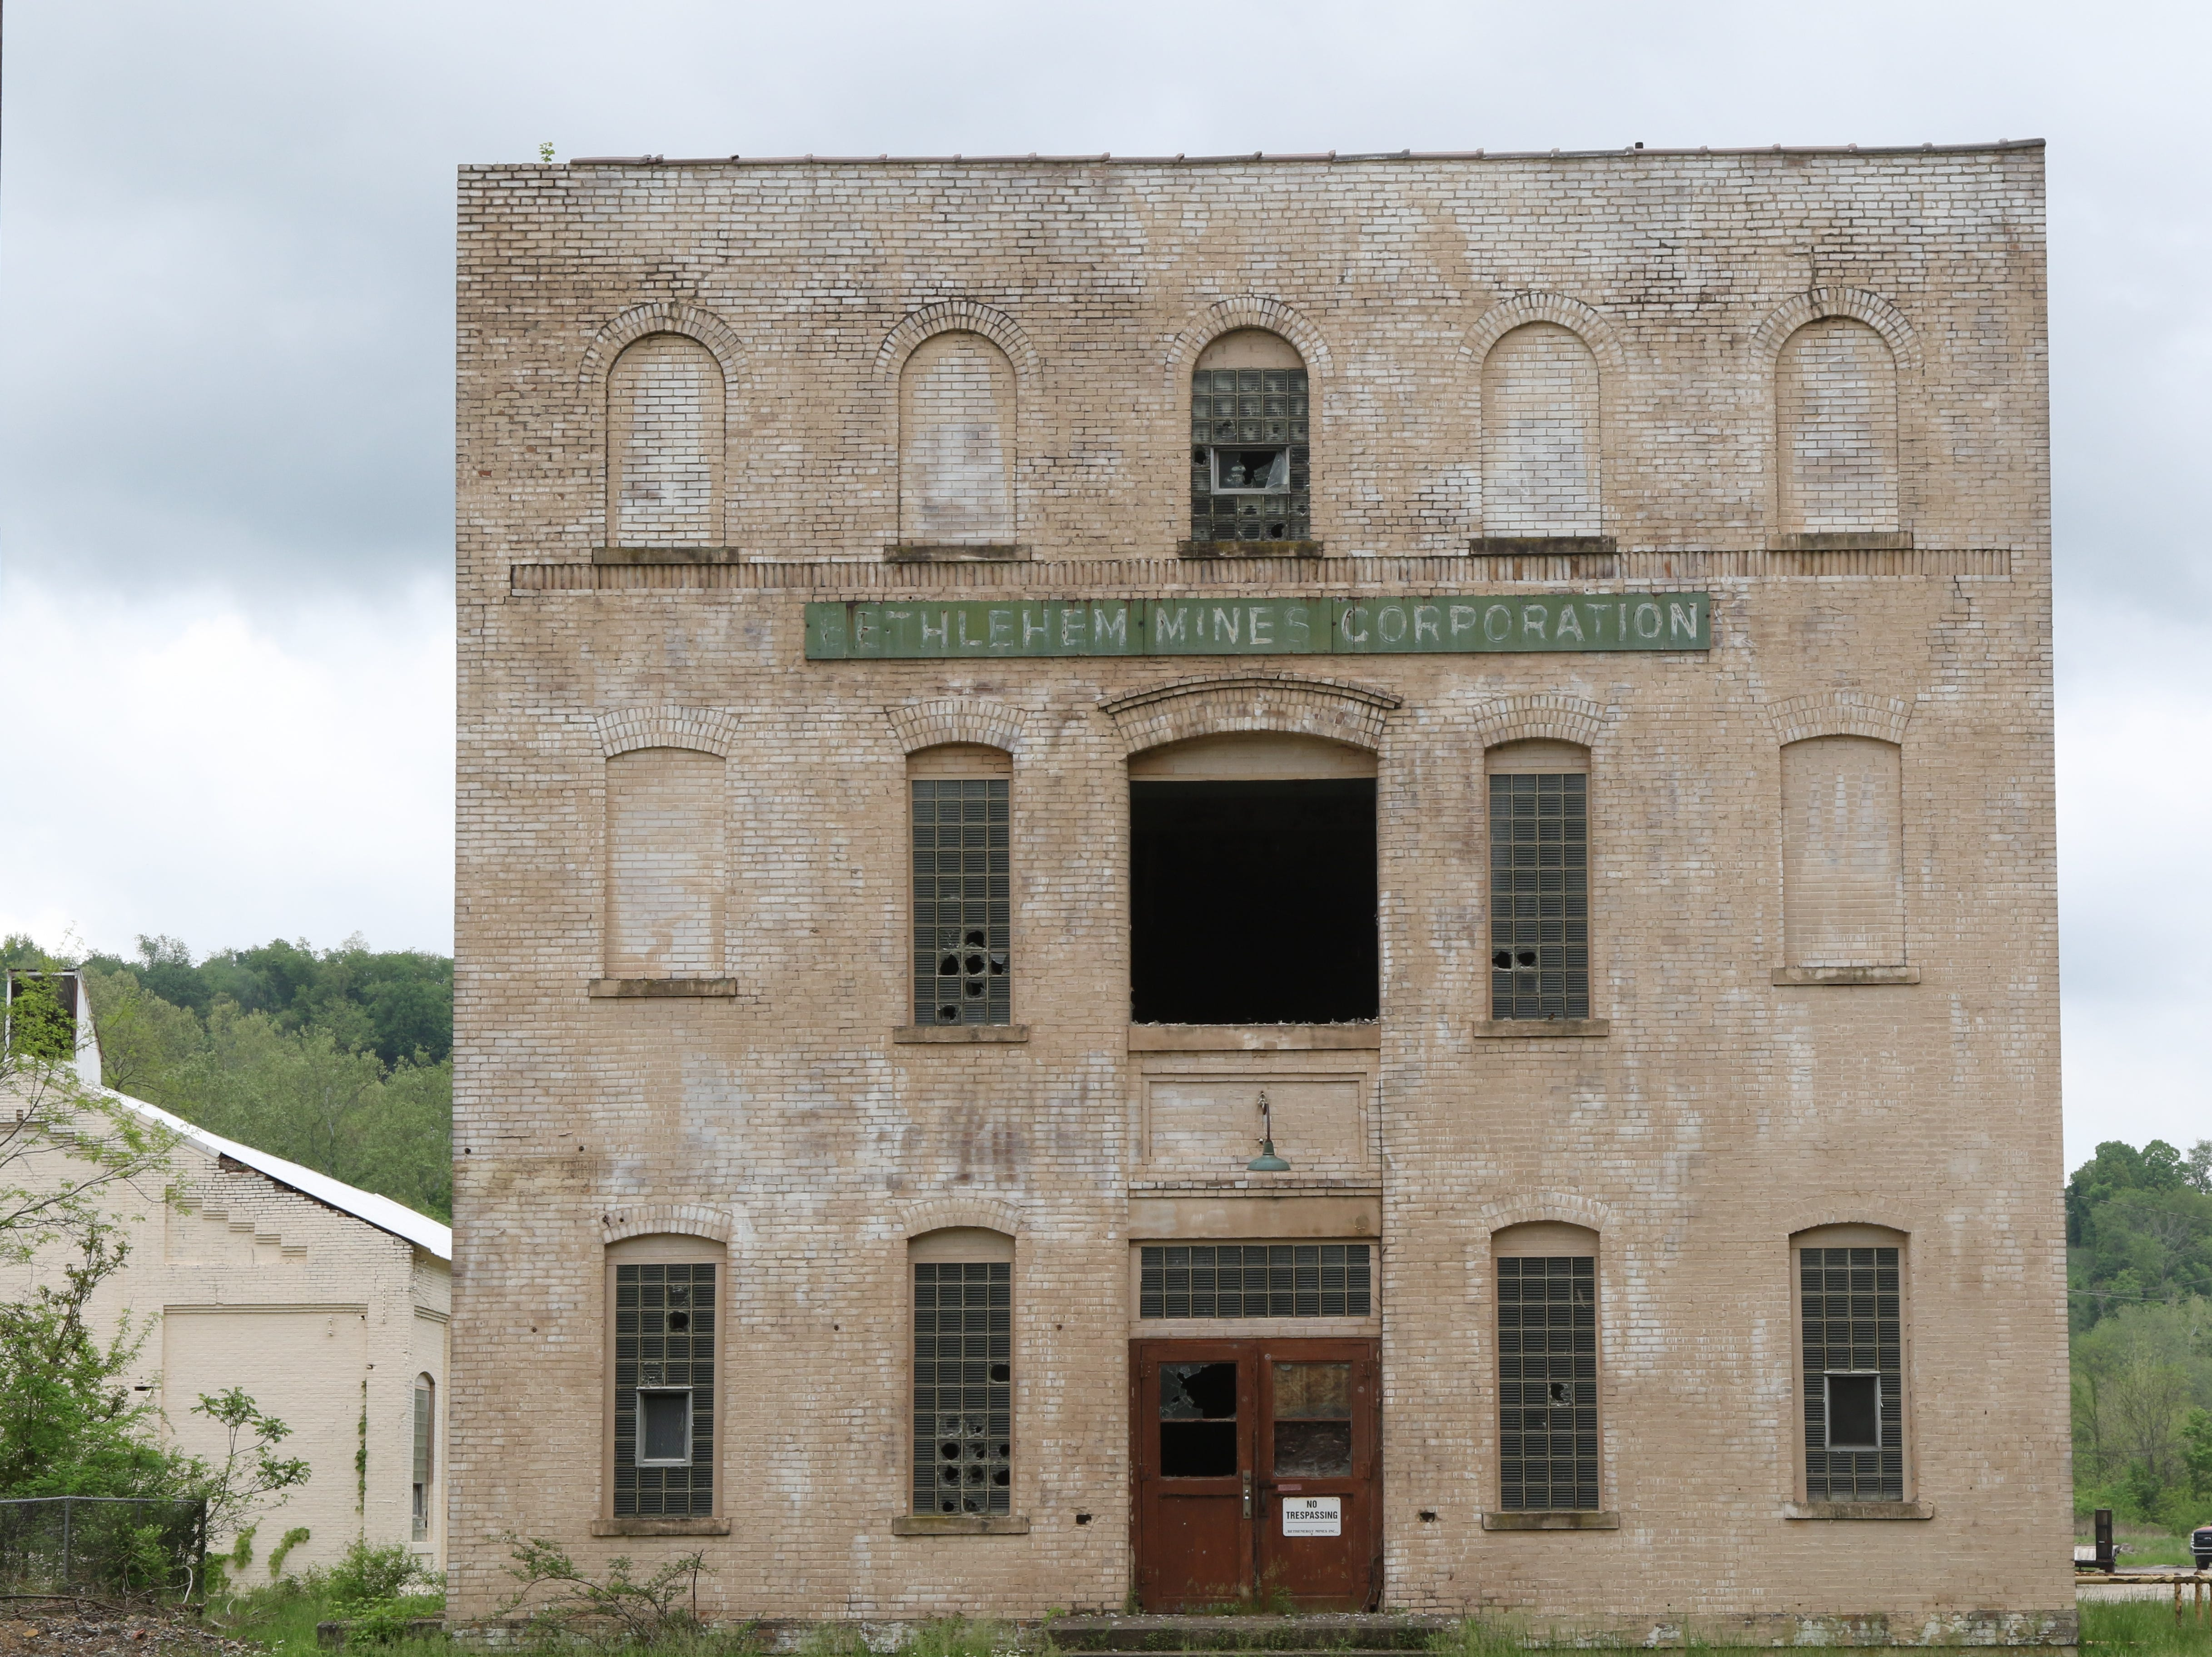 An abandoned building at the Bethlehem Mining Corporation in Marianna.